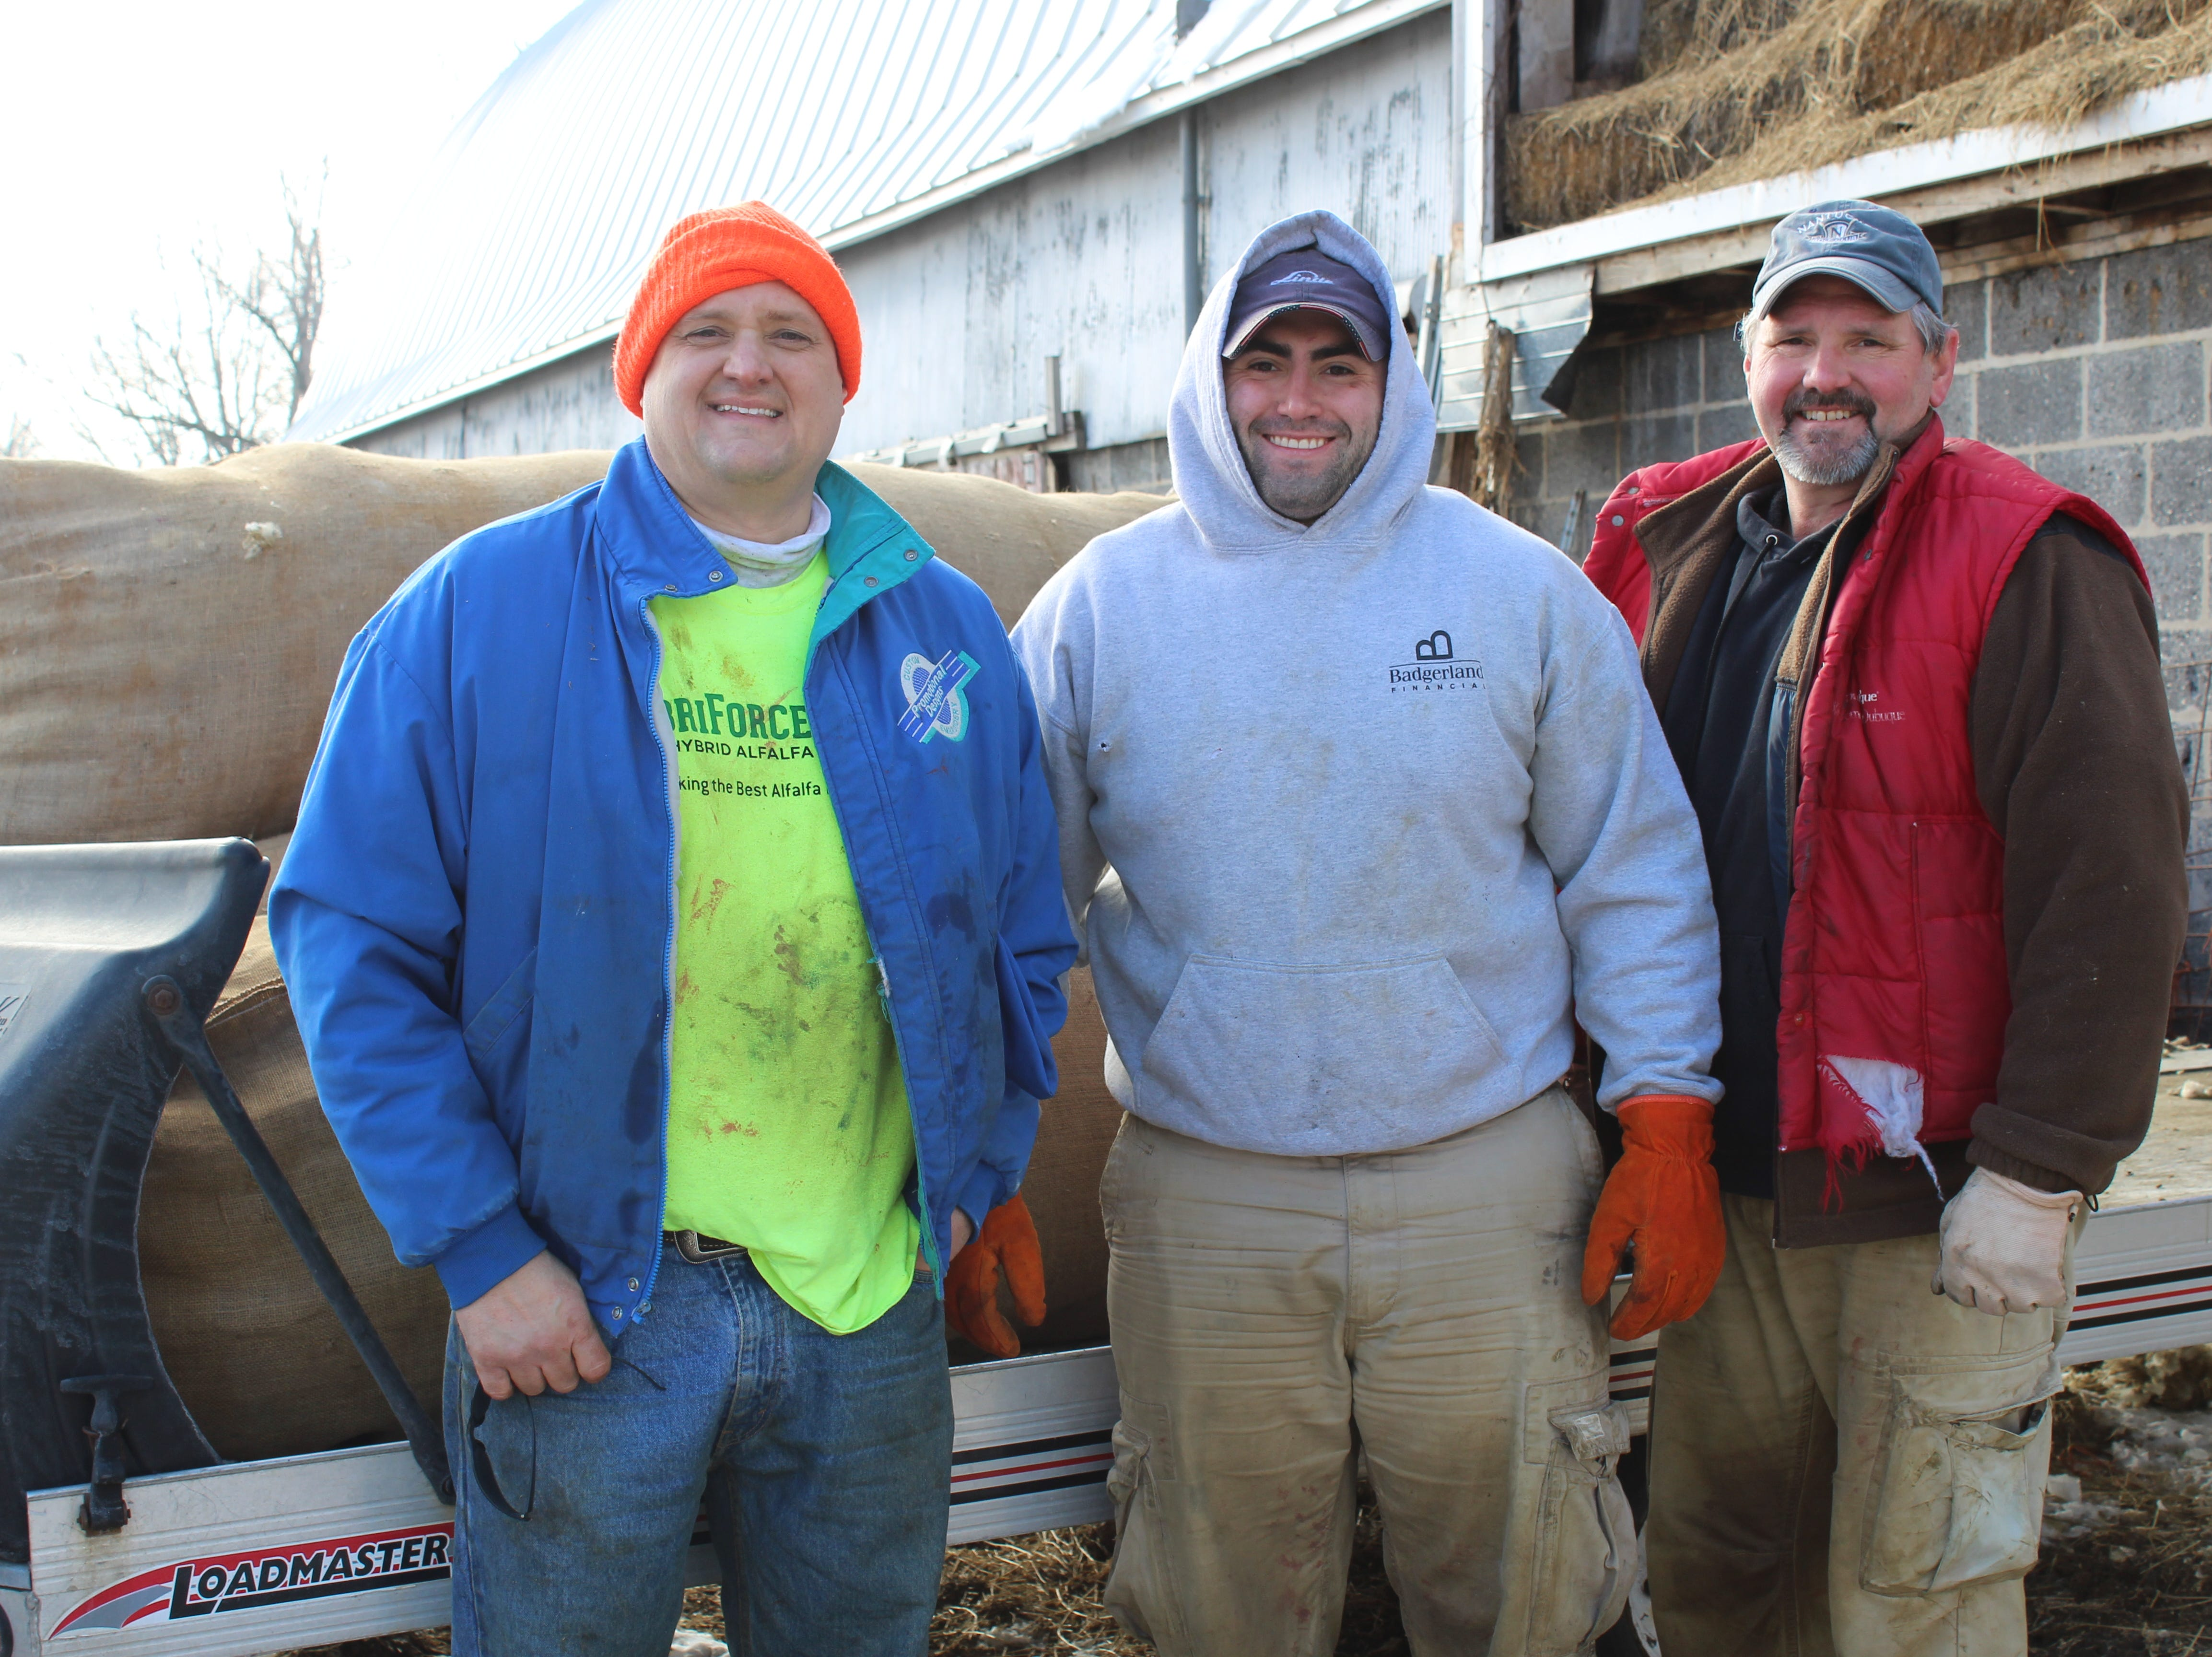 Jerry Held (left) is joined by his brother, Jay Held (right) and Jay's son, Jacob  Held, at Cottonwood Creek Farms after a morning of shearing sheep on Dec. 8.